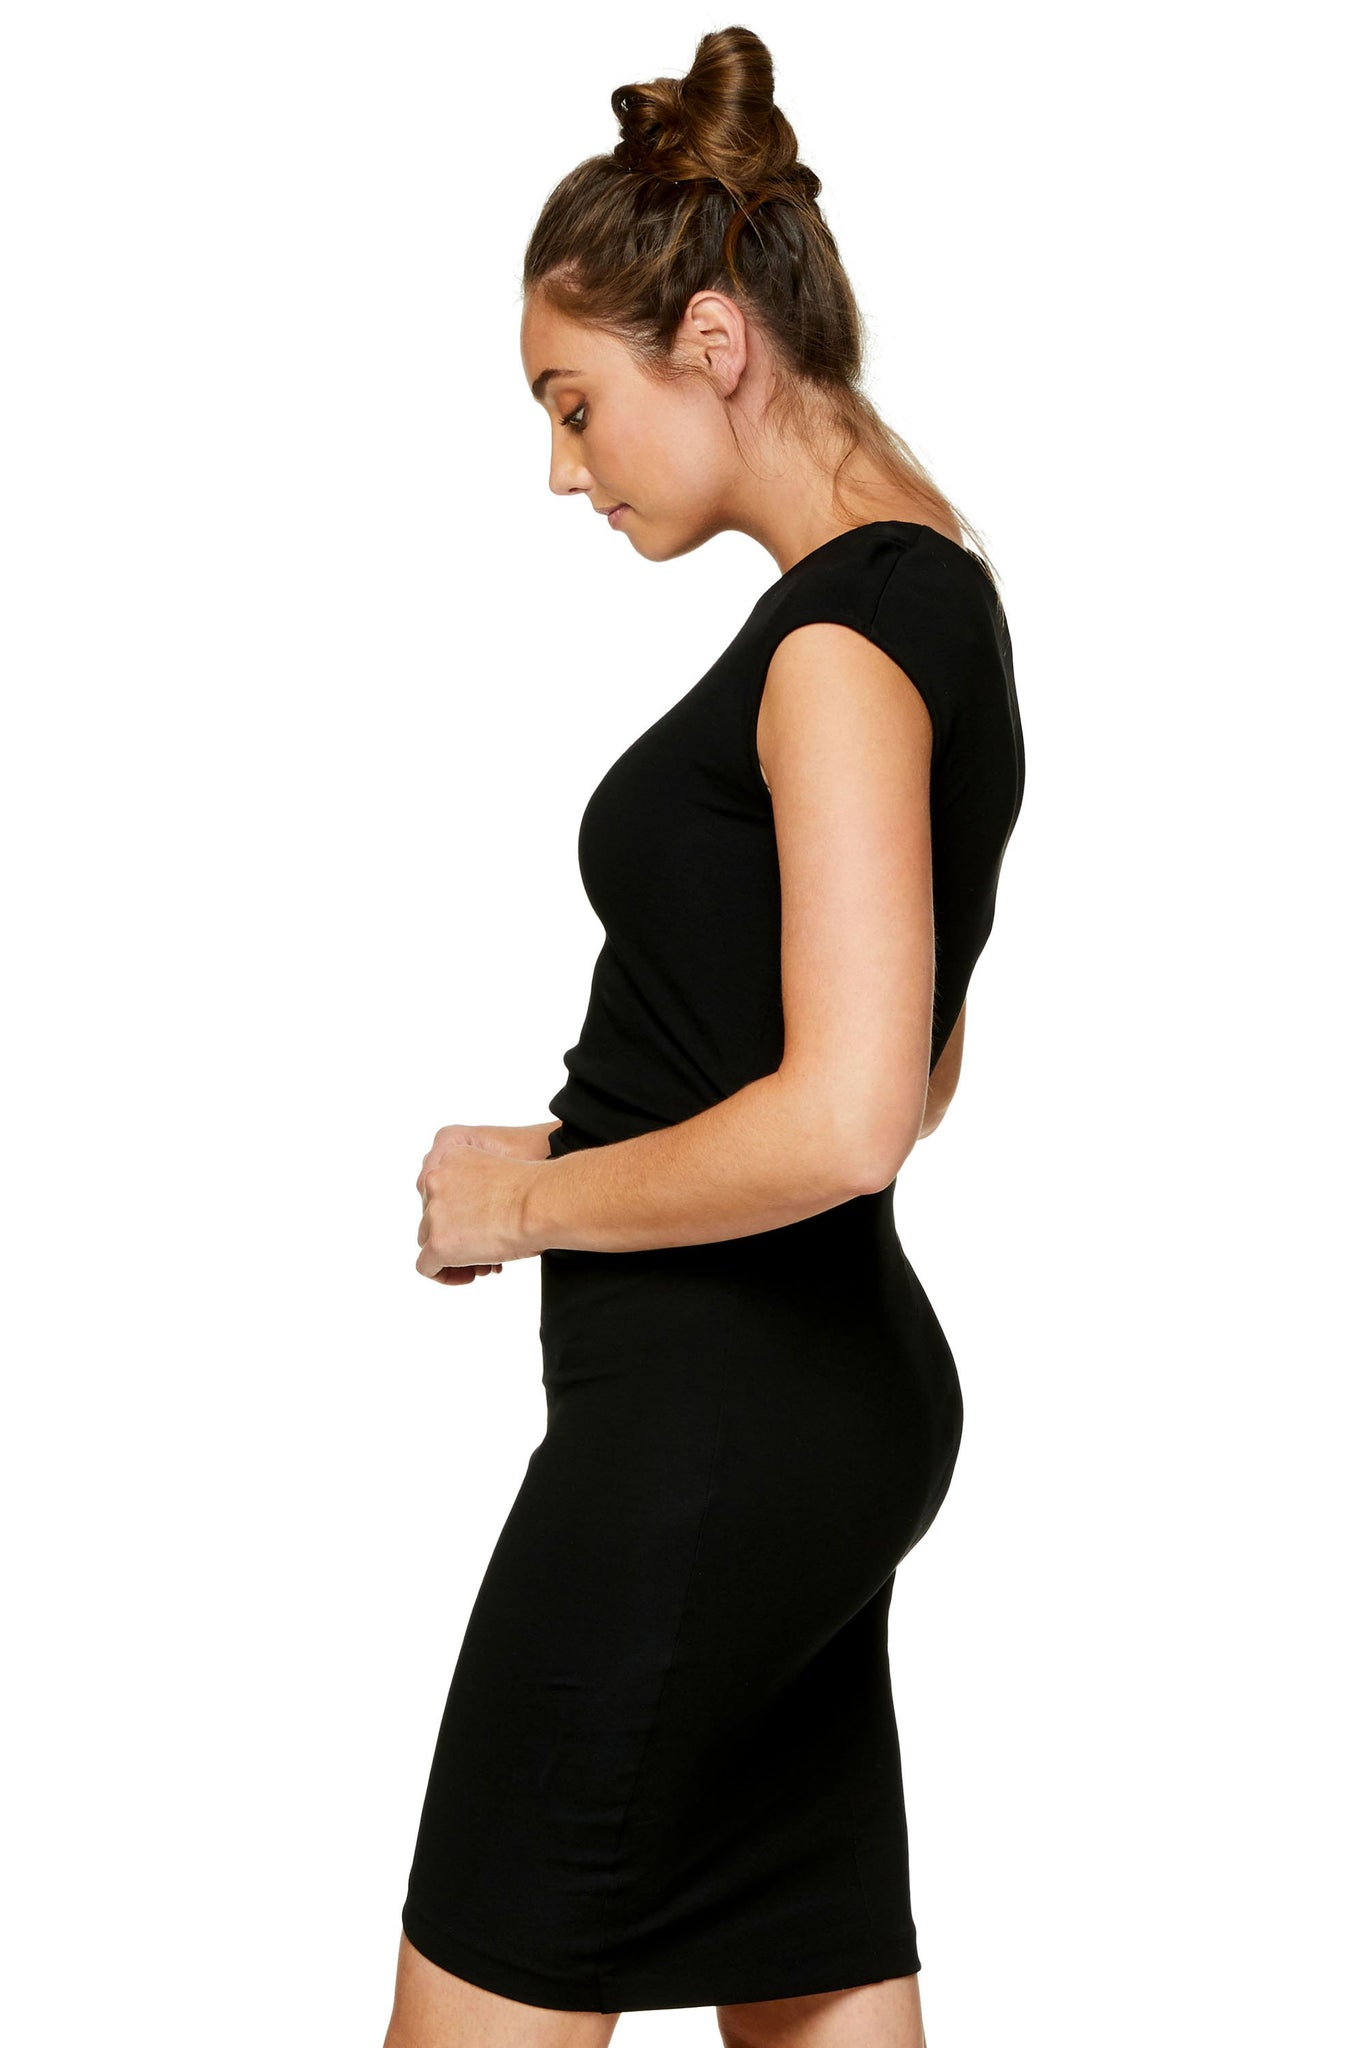 Black Maternity Dress - Formal Maternity Dress 5